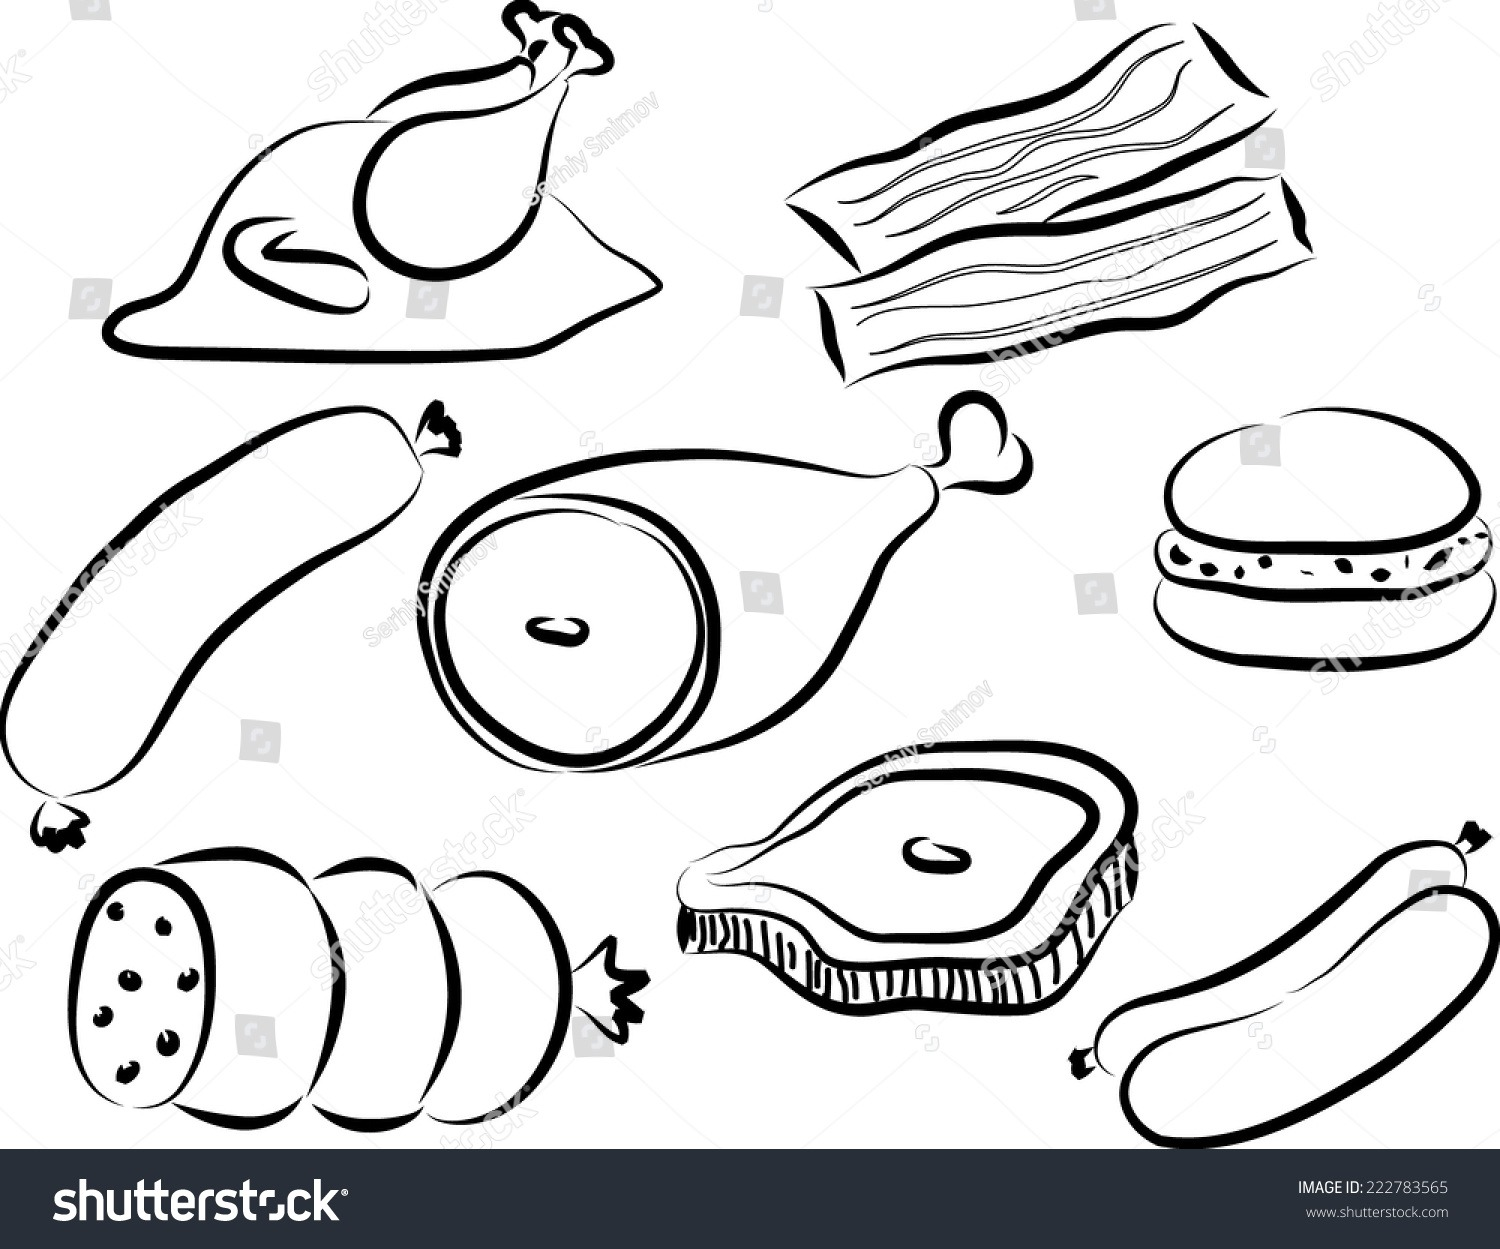 Meat Doodle Icon Vector Stock Vector (royalty Free) 222783565